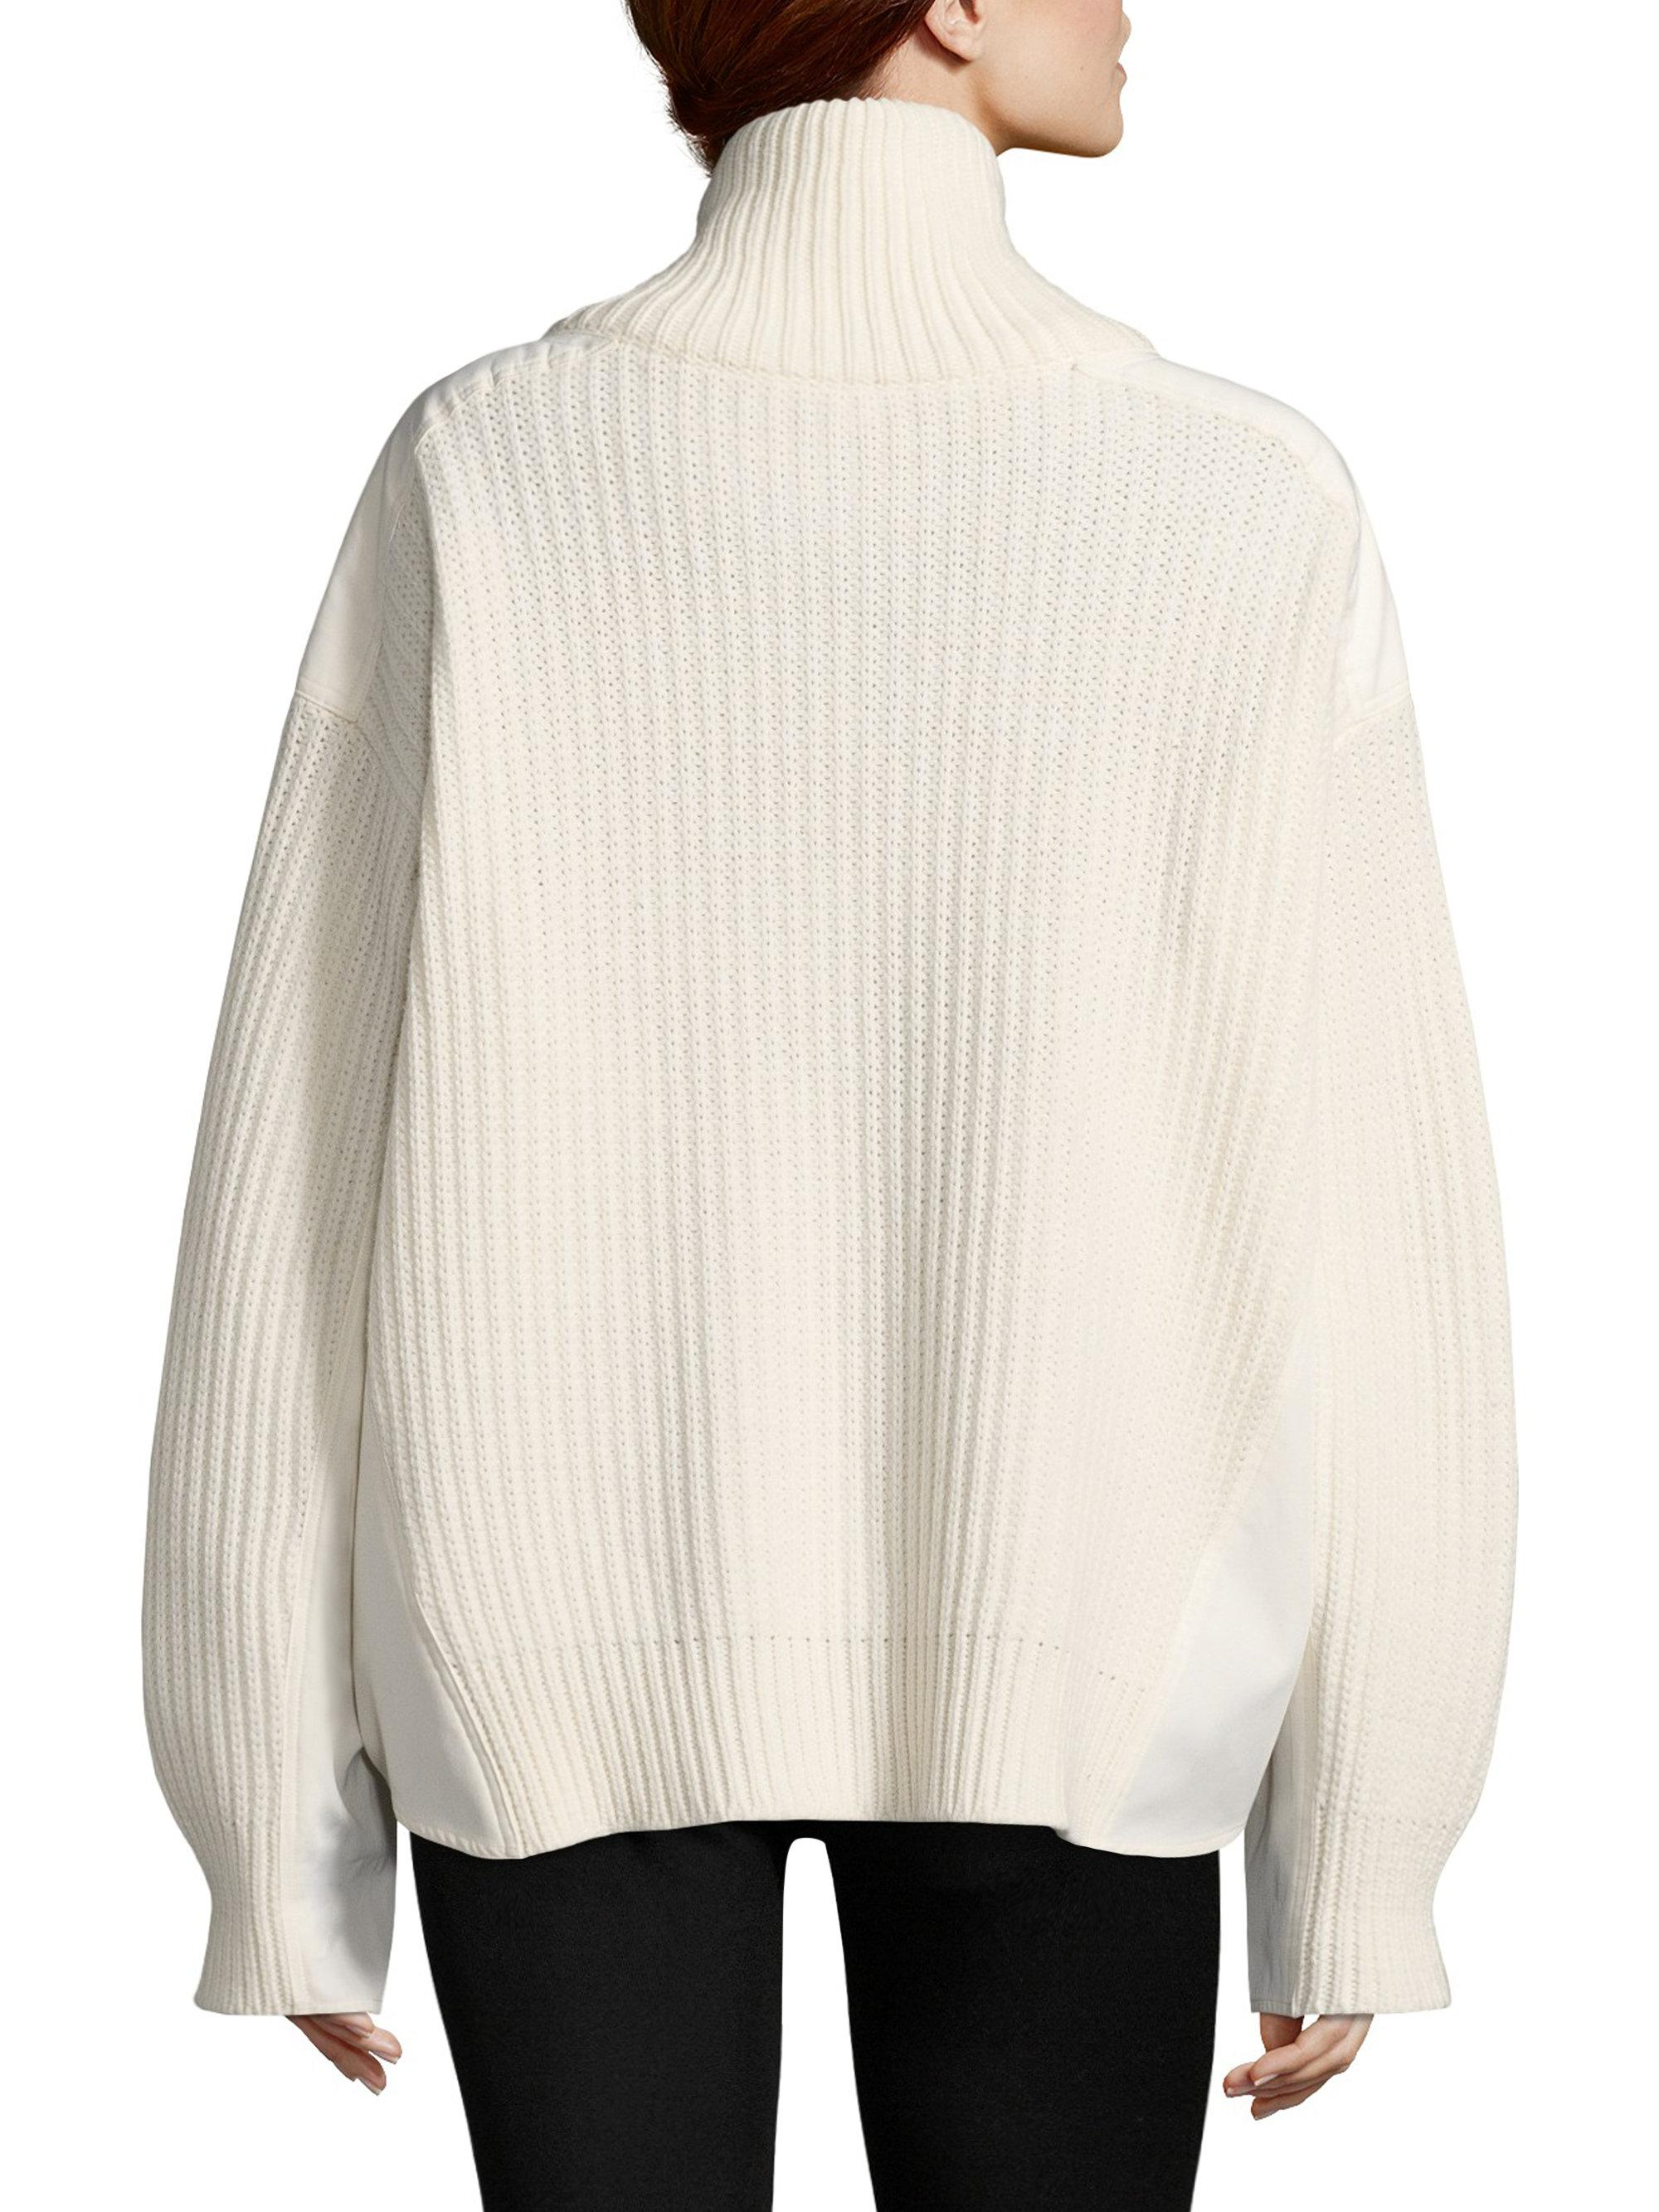 Moncler Oversized Wool Cardigan in White | Lyst